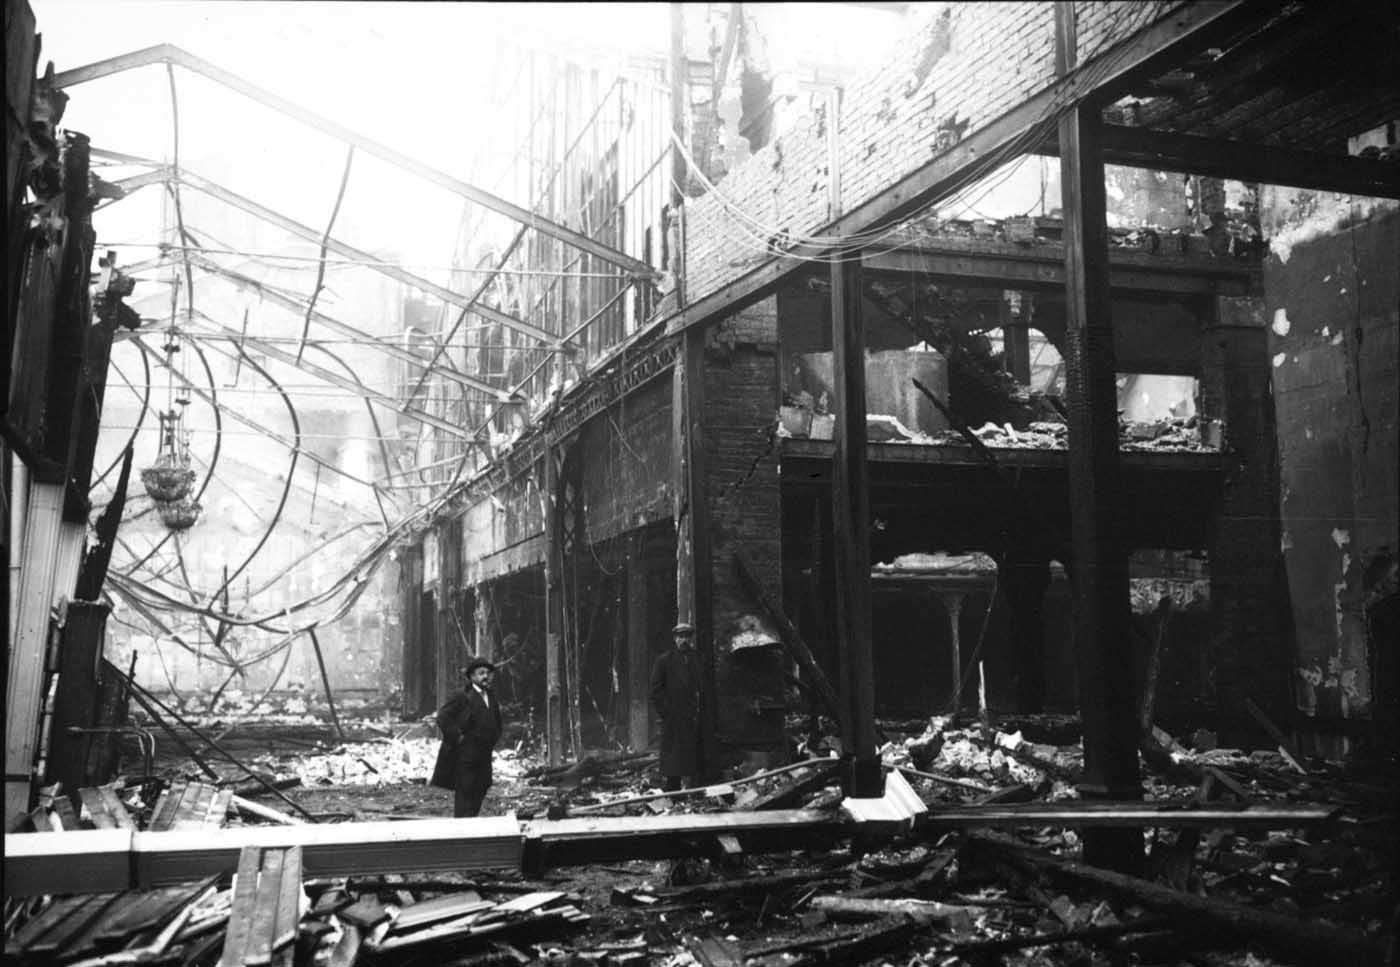 Photo of inside the Moulin Rouge after it was ravaged by a fire in 1915. The rebuilt Moulin Rouge finally reopened in 1921.